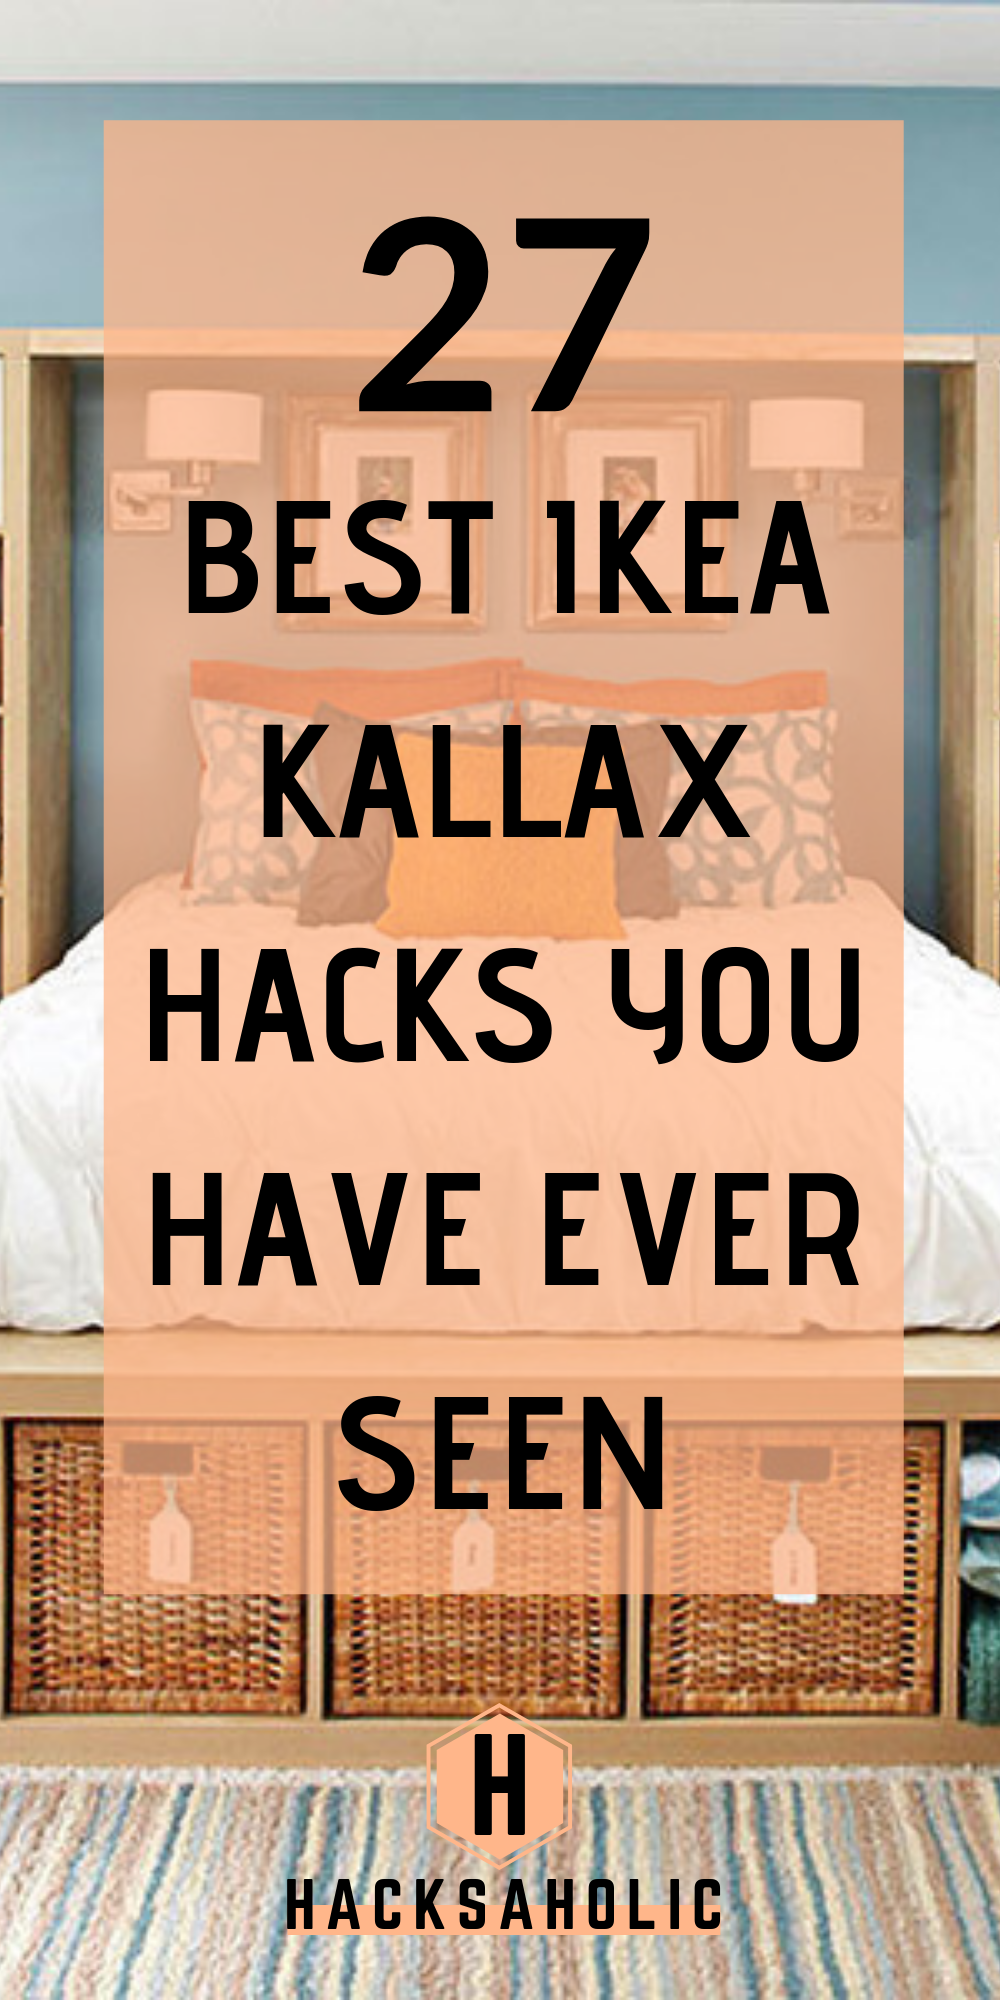 There are so many great Ikea Kallax hacks out there but which are the best? We've brought together the very best Ikea Kallax hacks for you in one place. You can create so many gorgeous and practical pieces of furniture with an Ikea Kallax. #ikeakallaxhacks #kallaxhacks #ikeahacks #ideas #inspiration